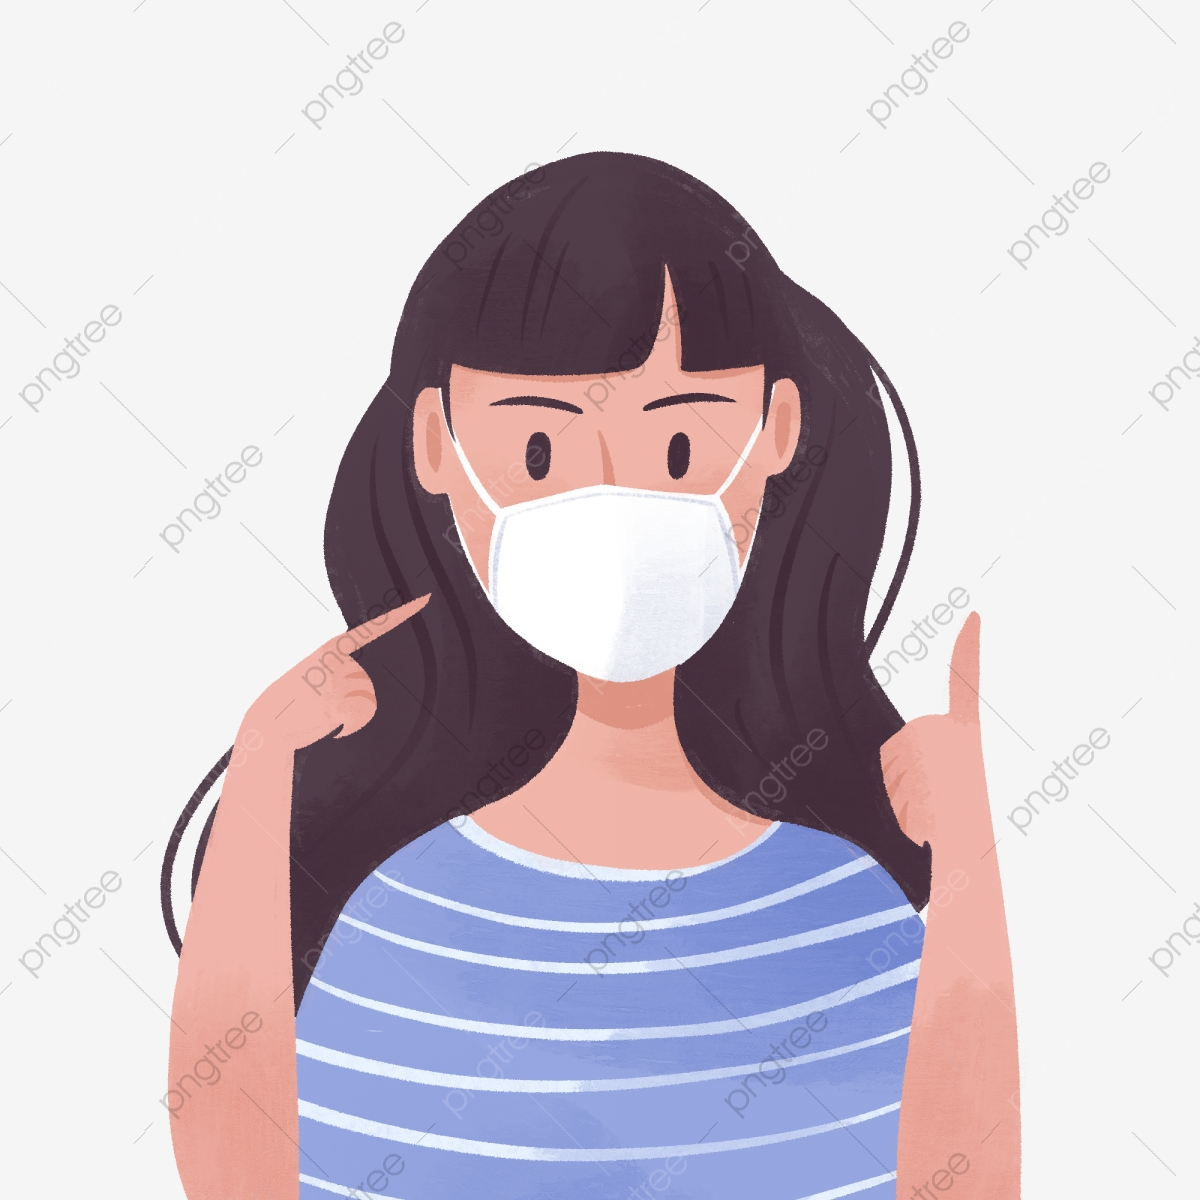 masker gambar png file vektor dan psd unduh gratis di pngtree https id pngtree com freepng hand drawn cute girl wearing mask 5341060 html